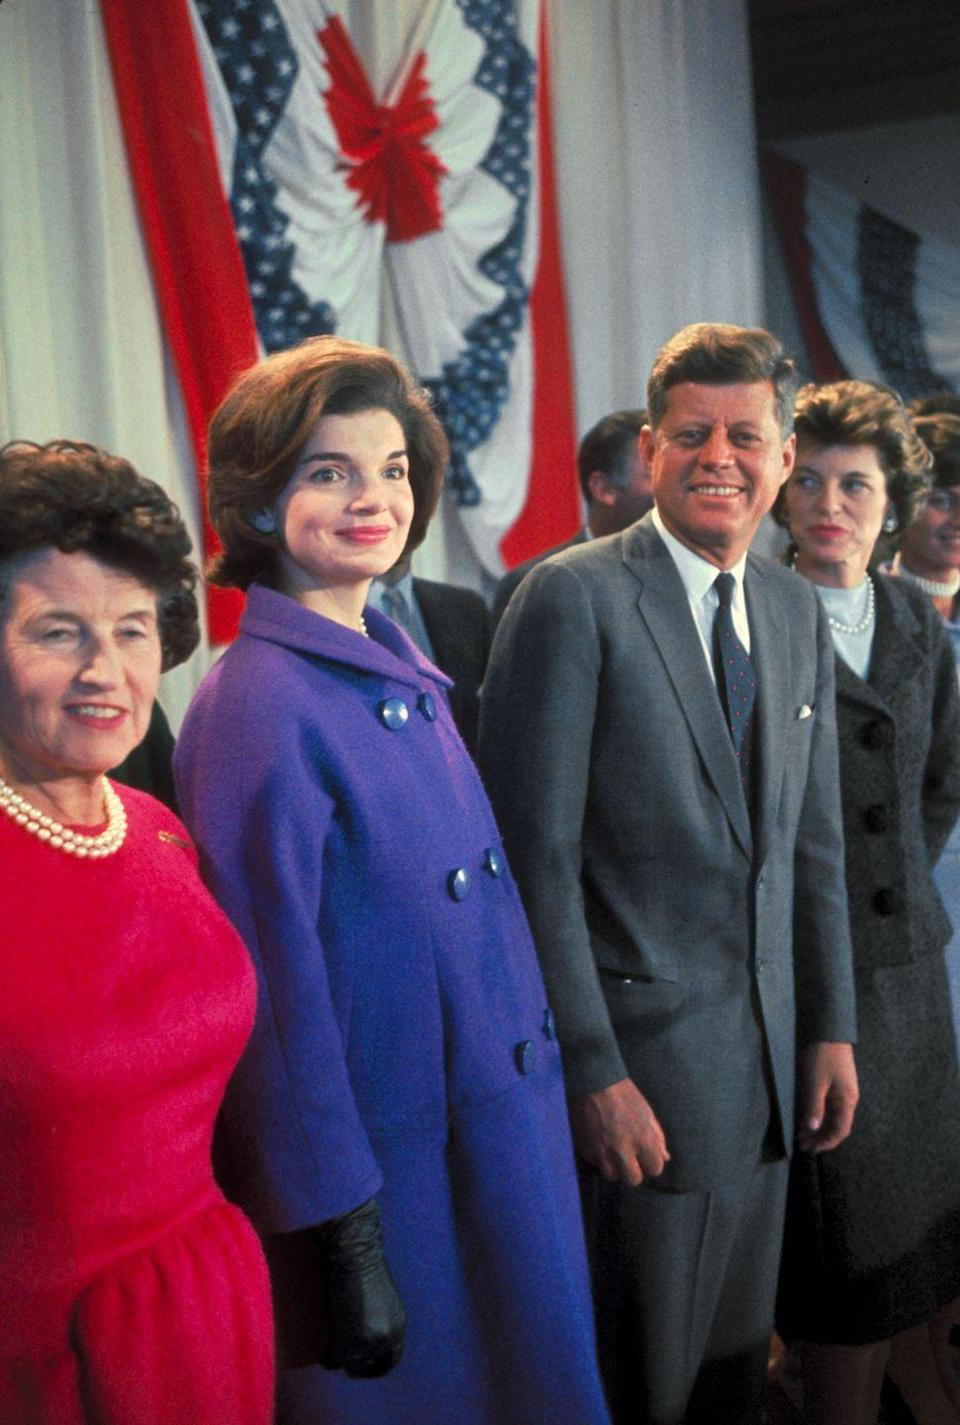 <p>Jackie joins her husband on-stage in Hyannis Port, Massachusetts the day after he was announced as the President-elect. The future First Lady was nine months pregnant with their son, John F. Kennedy Jr.</p>